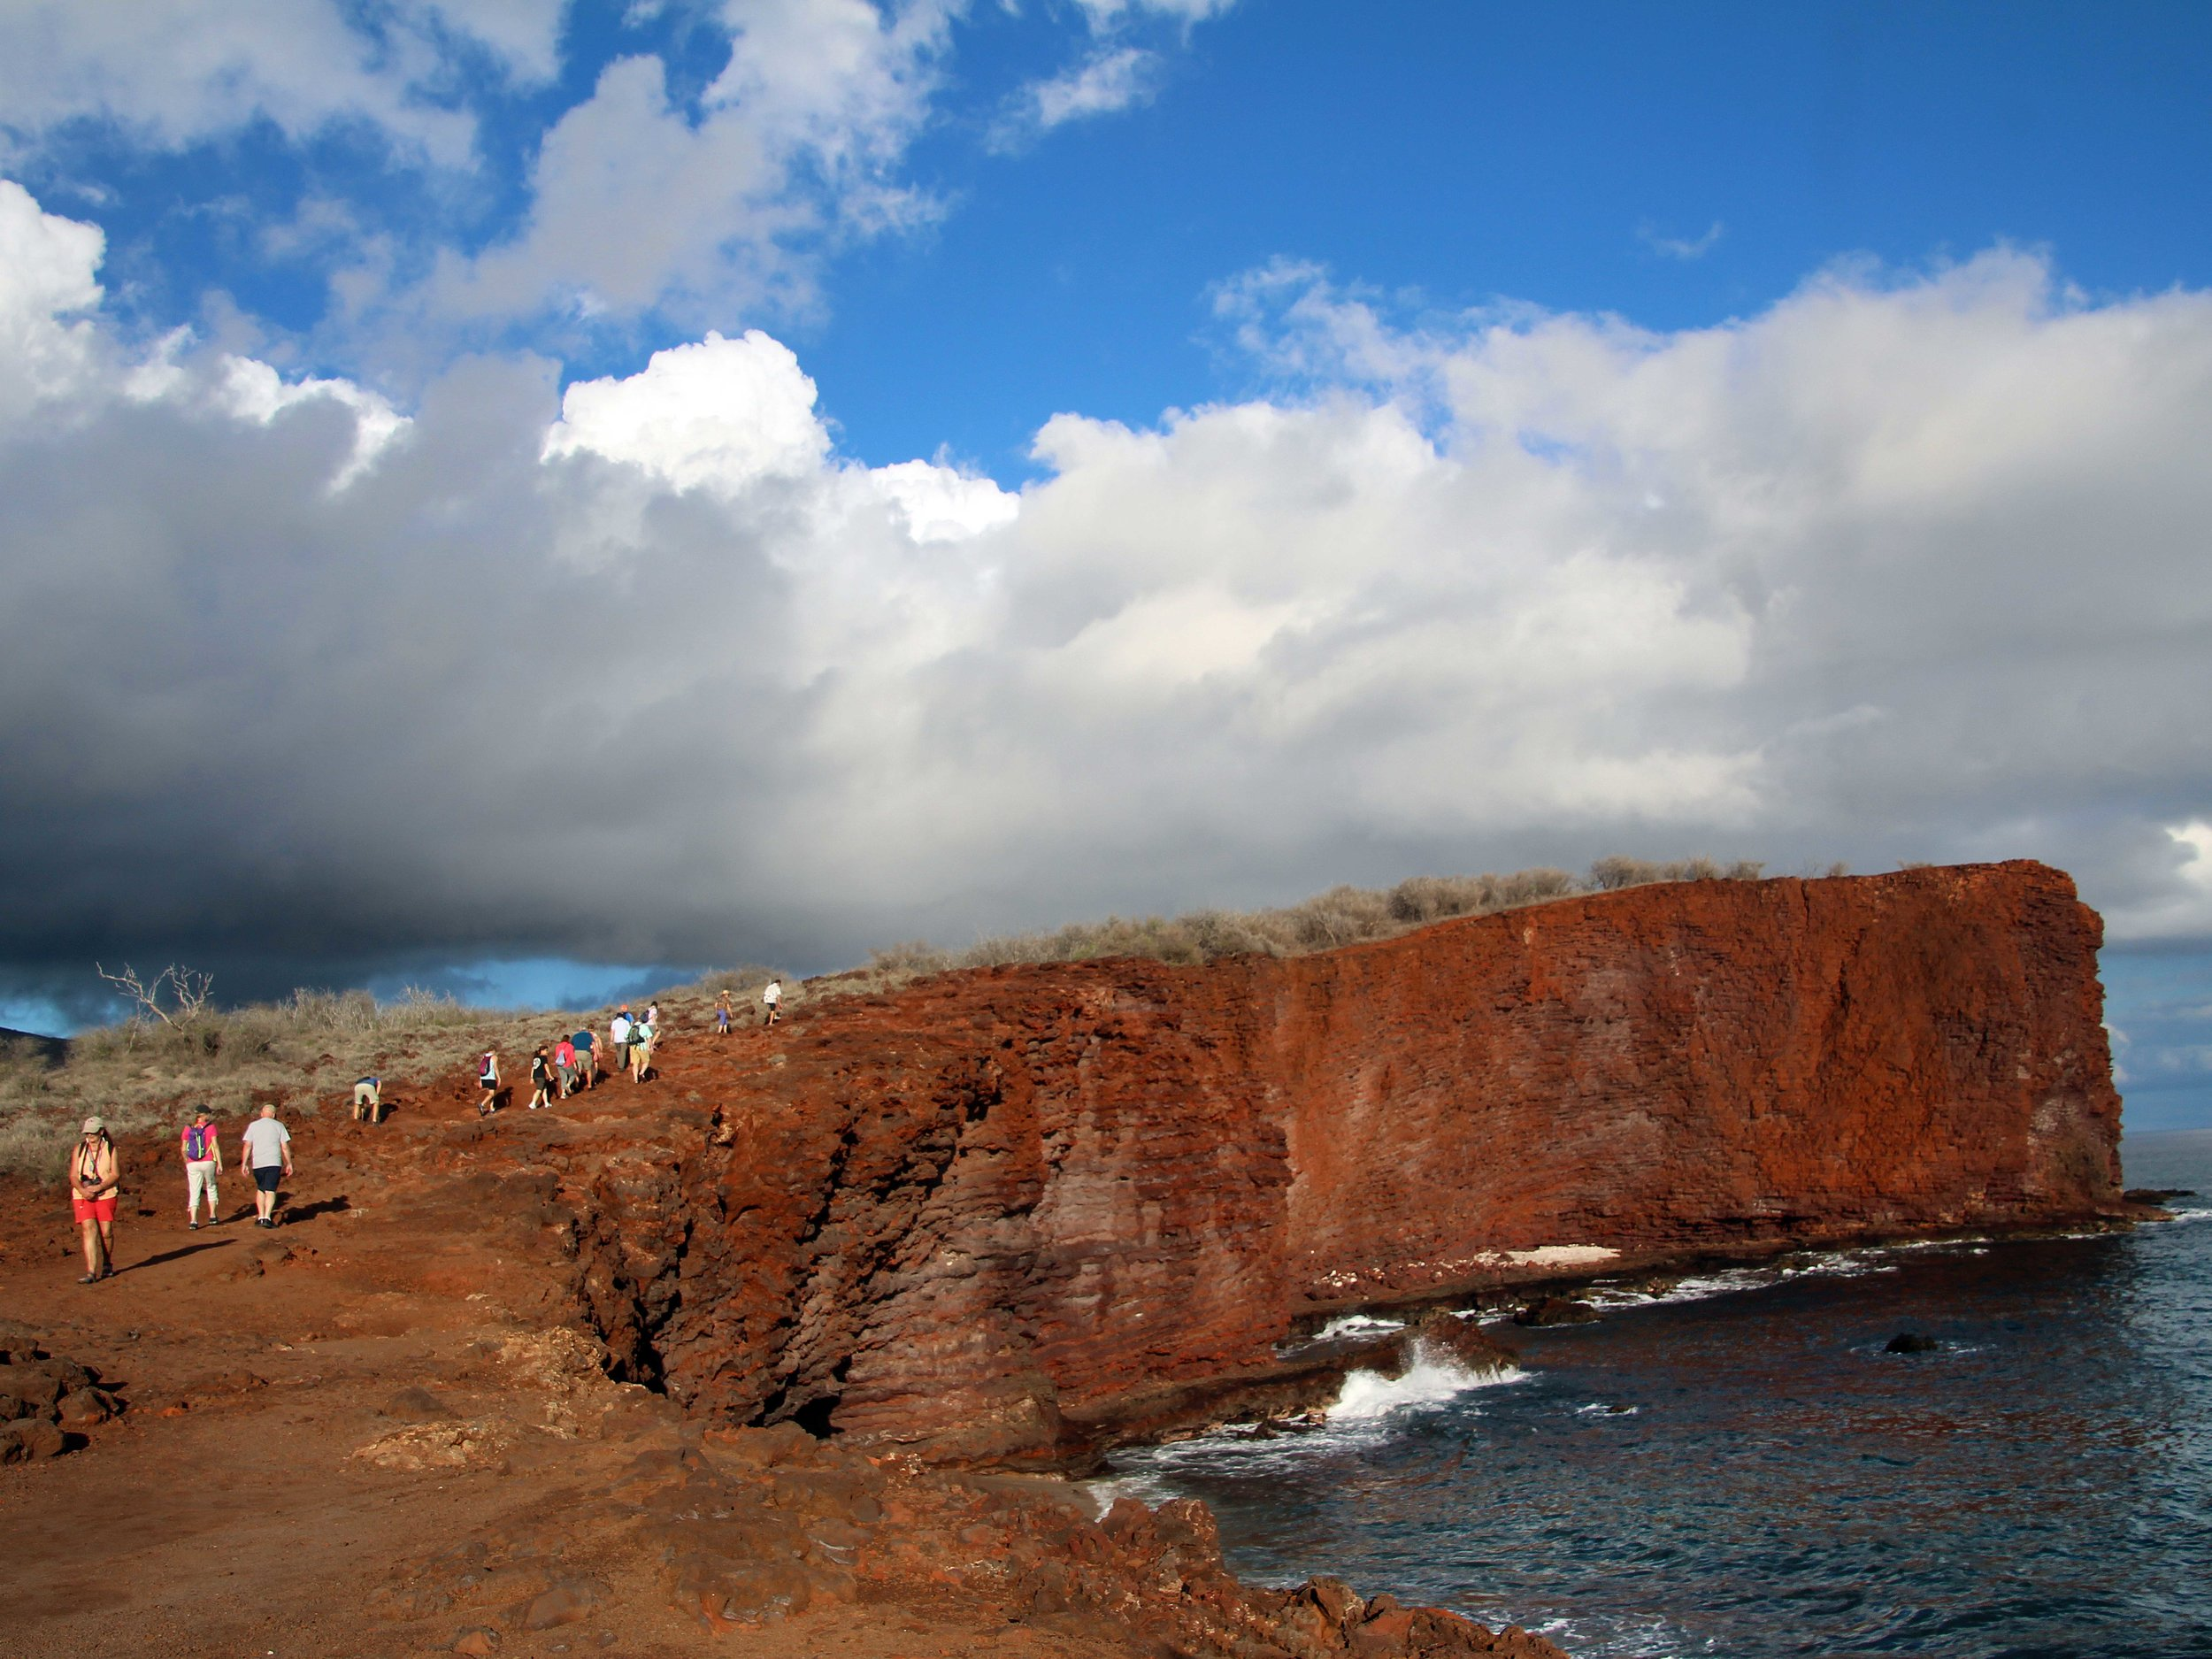 Hiking the cliffs of Manele Bay, Lanai Hawaii © Joanne DiBona Photography